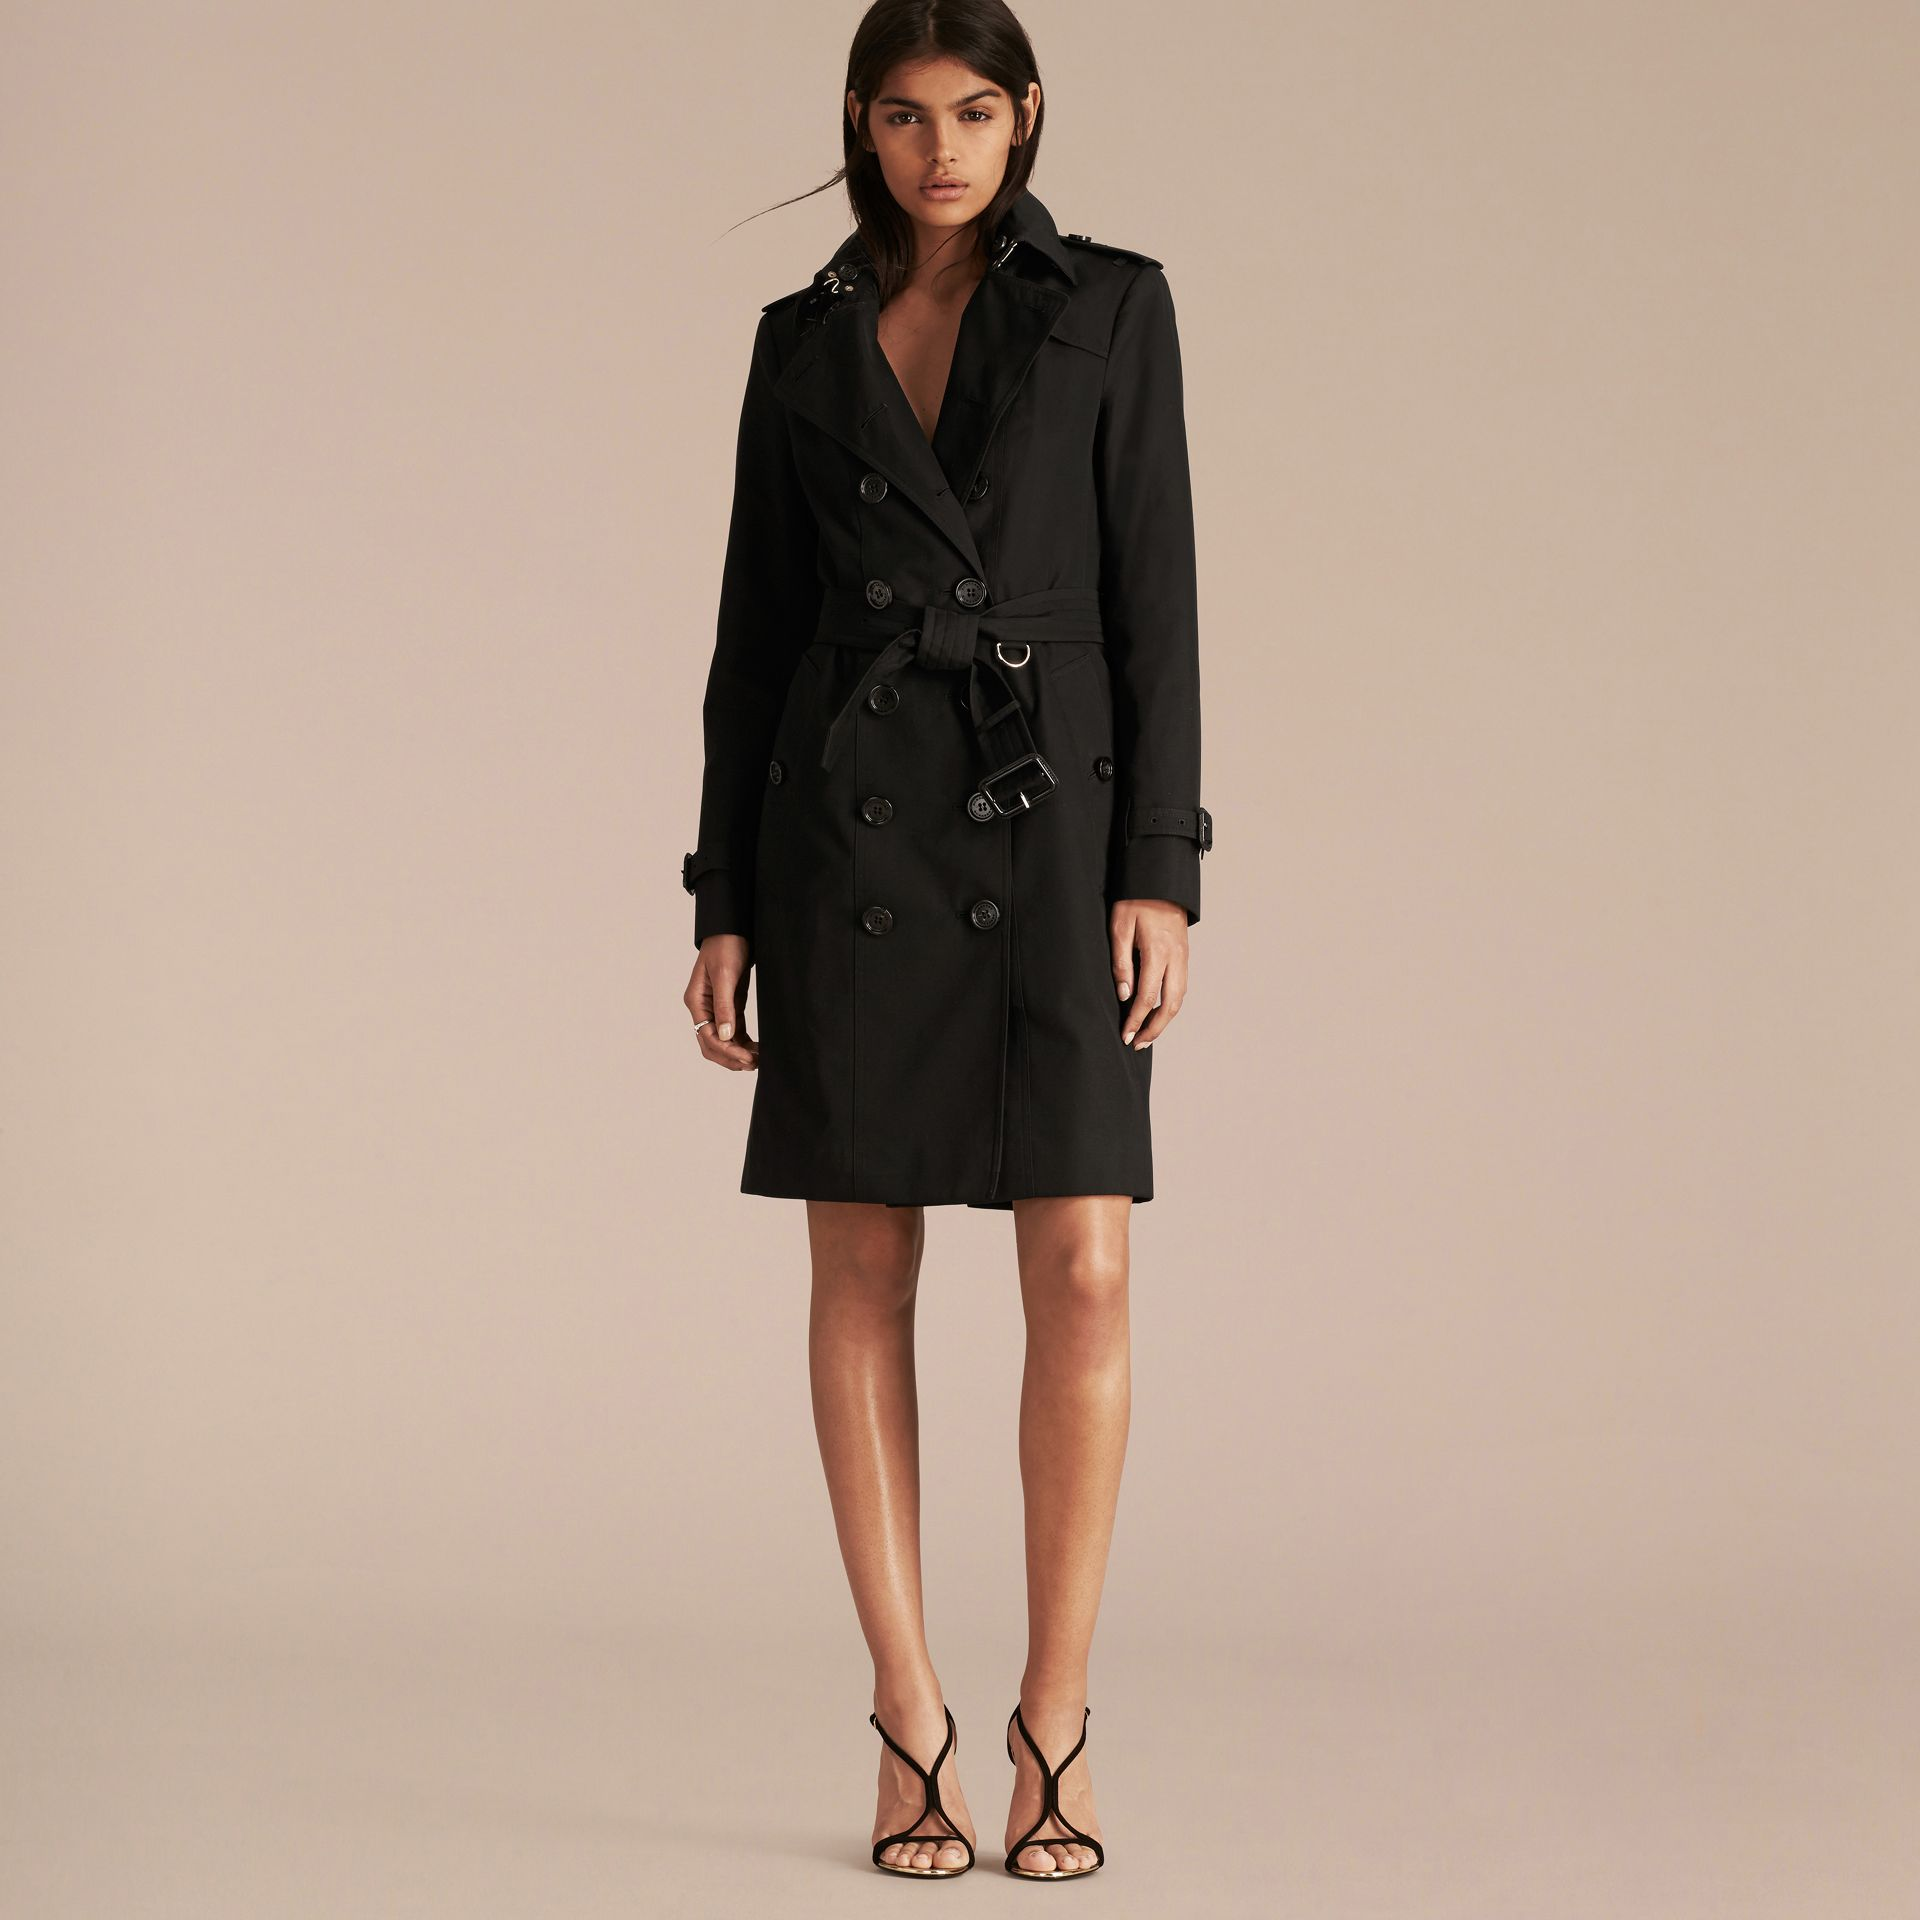 Black Cotton Gabardine Trench Coat with Detachable Fur Trim - gallery image 7